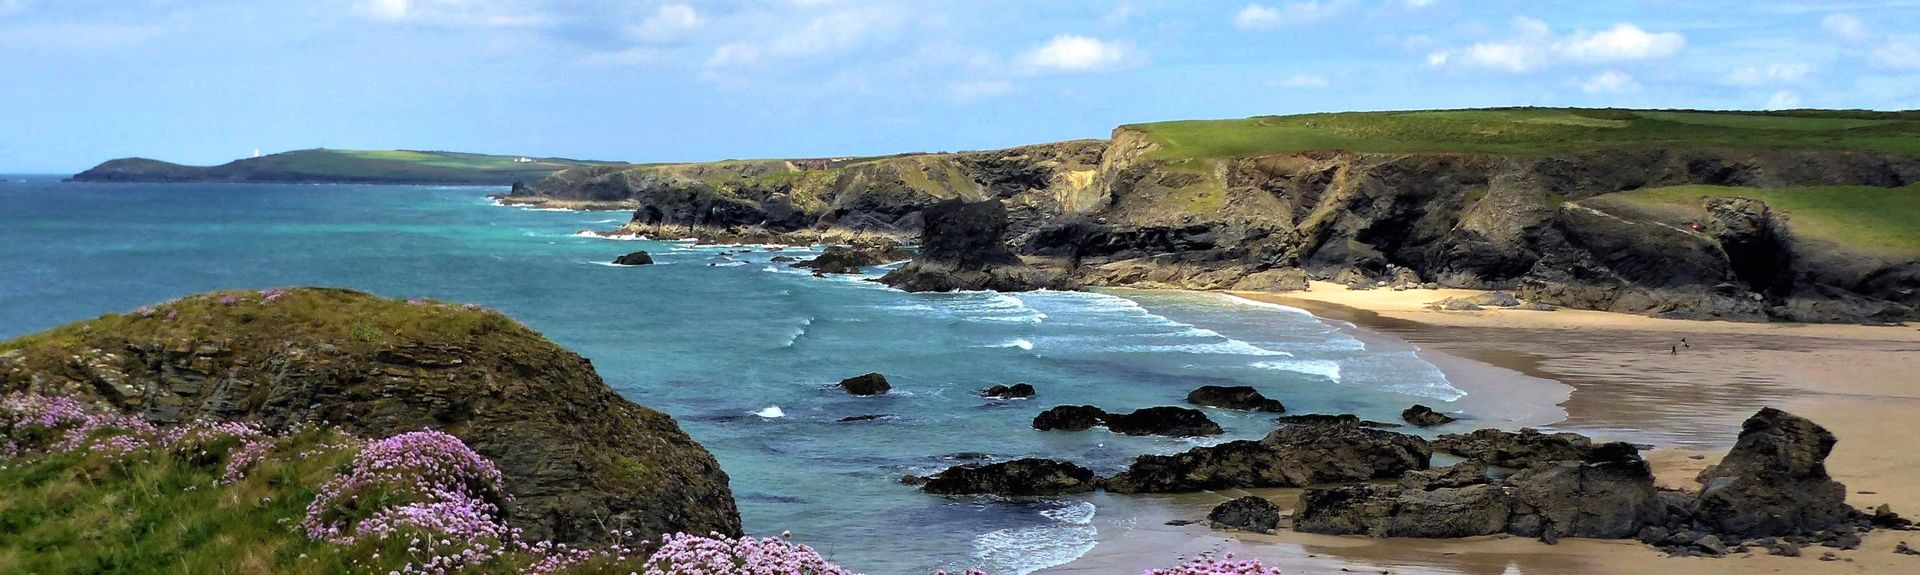 Saint Breock, Cornwall, UK